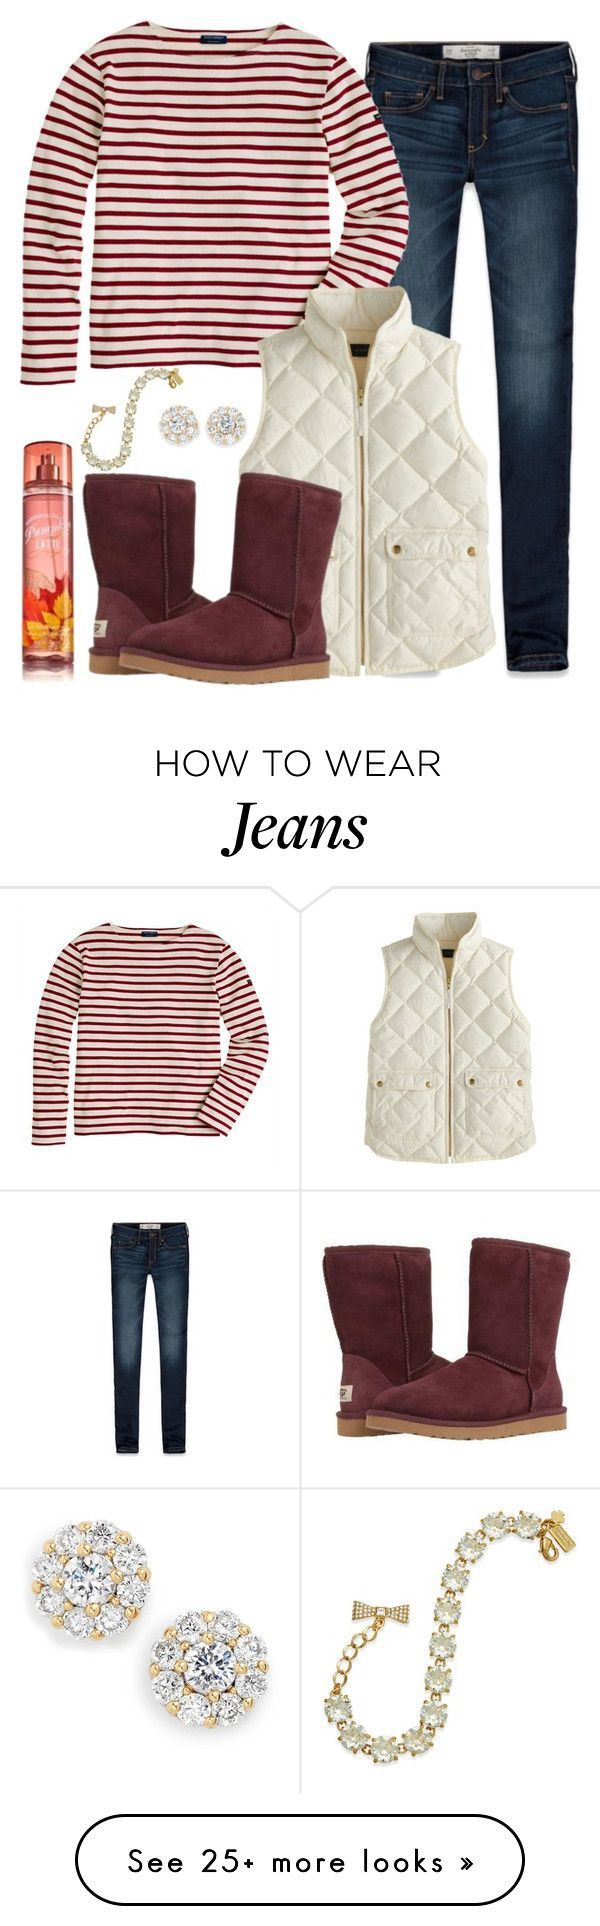 Apple picking by keileeen on Polyvore featuring Abercrombie  Fitch, J.Crew, UGG Australia, Kate Spade and fallformaggie